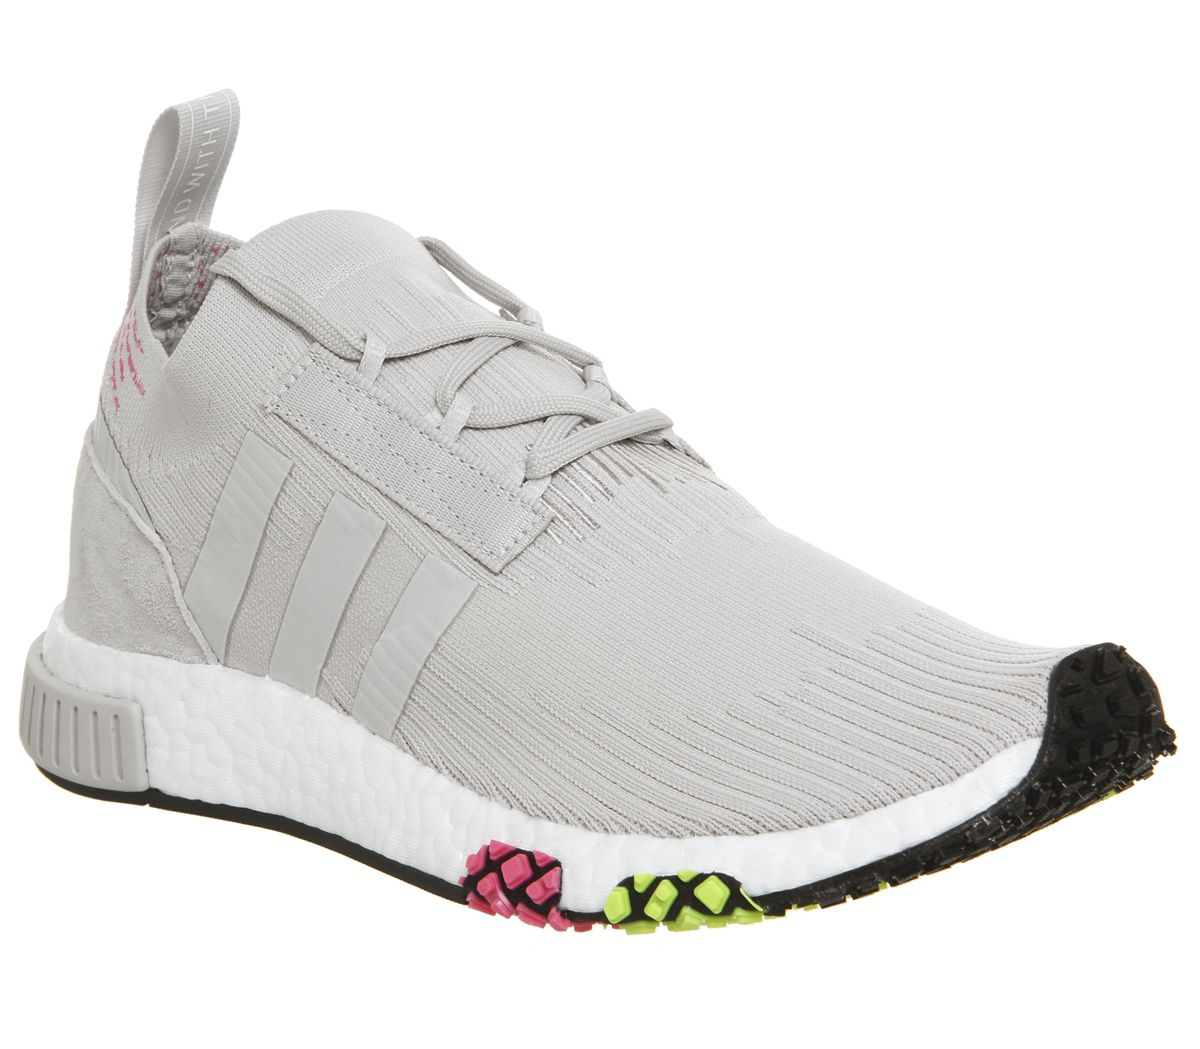 sports shoes 43536 ee228 Nmd Racer Primeknit Trainer